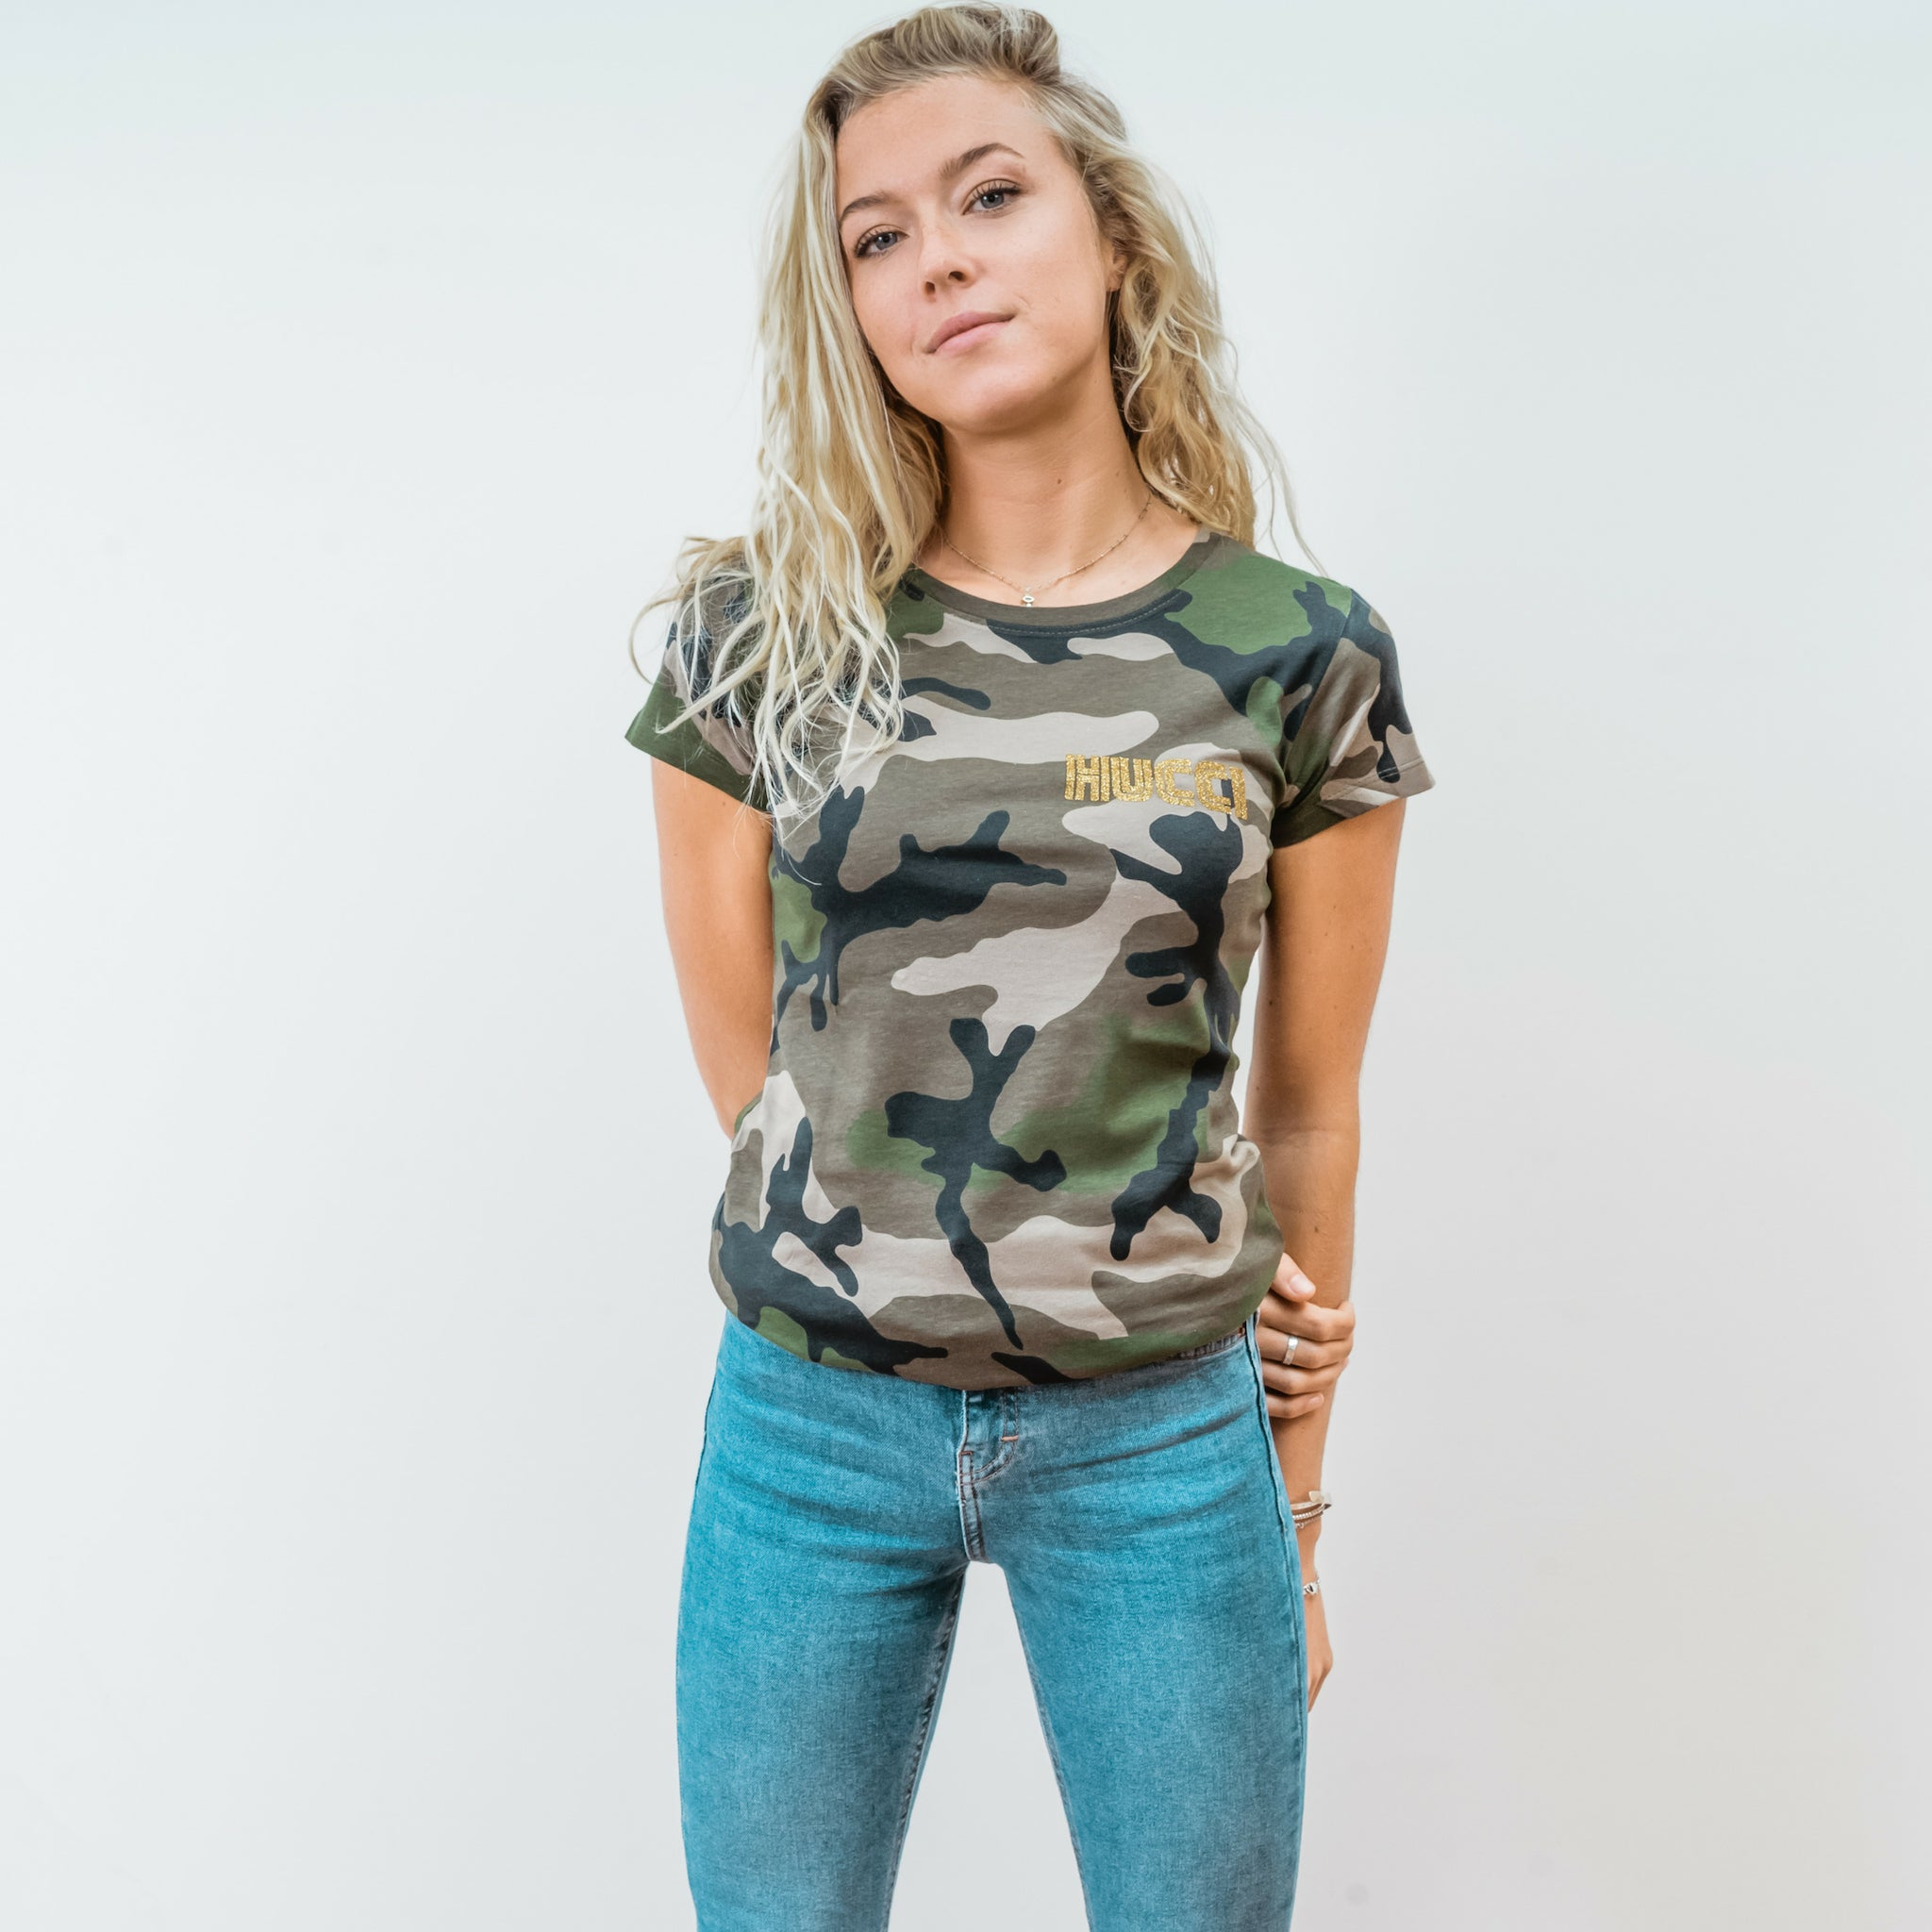 Ladies camo tshirt with hucci emblem